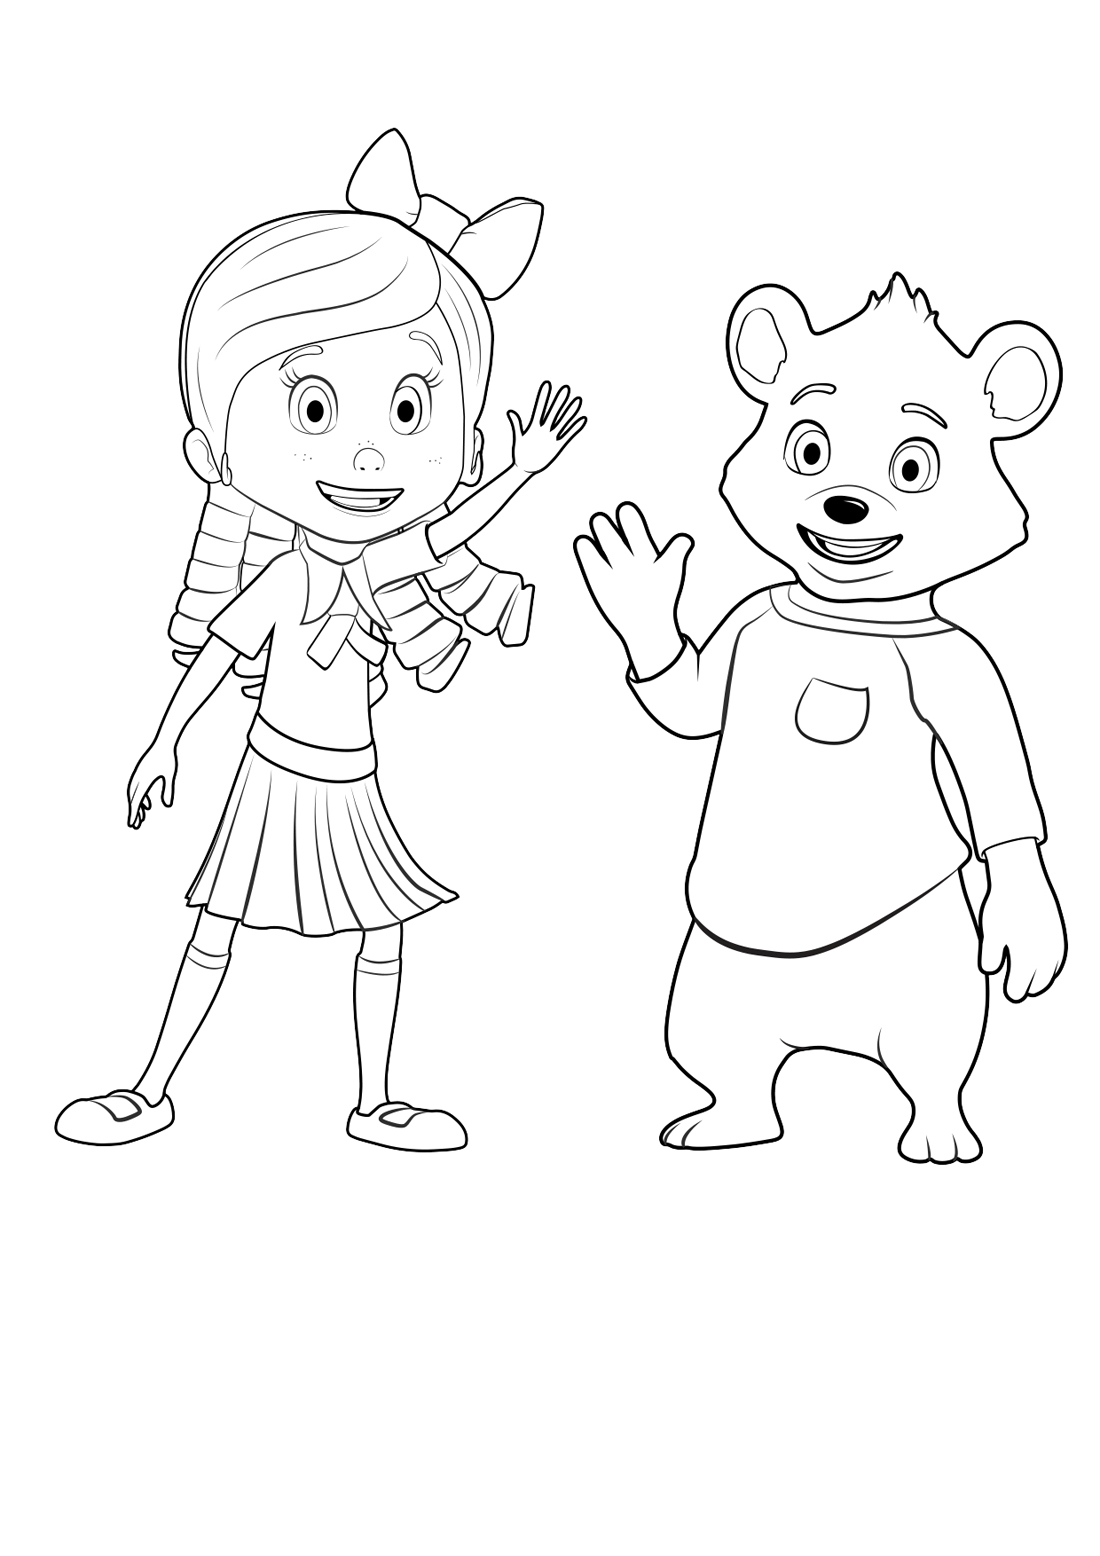 6/8/2019· colorear ladybug y cat noir. Goldie and Bear coloring pages to download and print for free